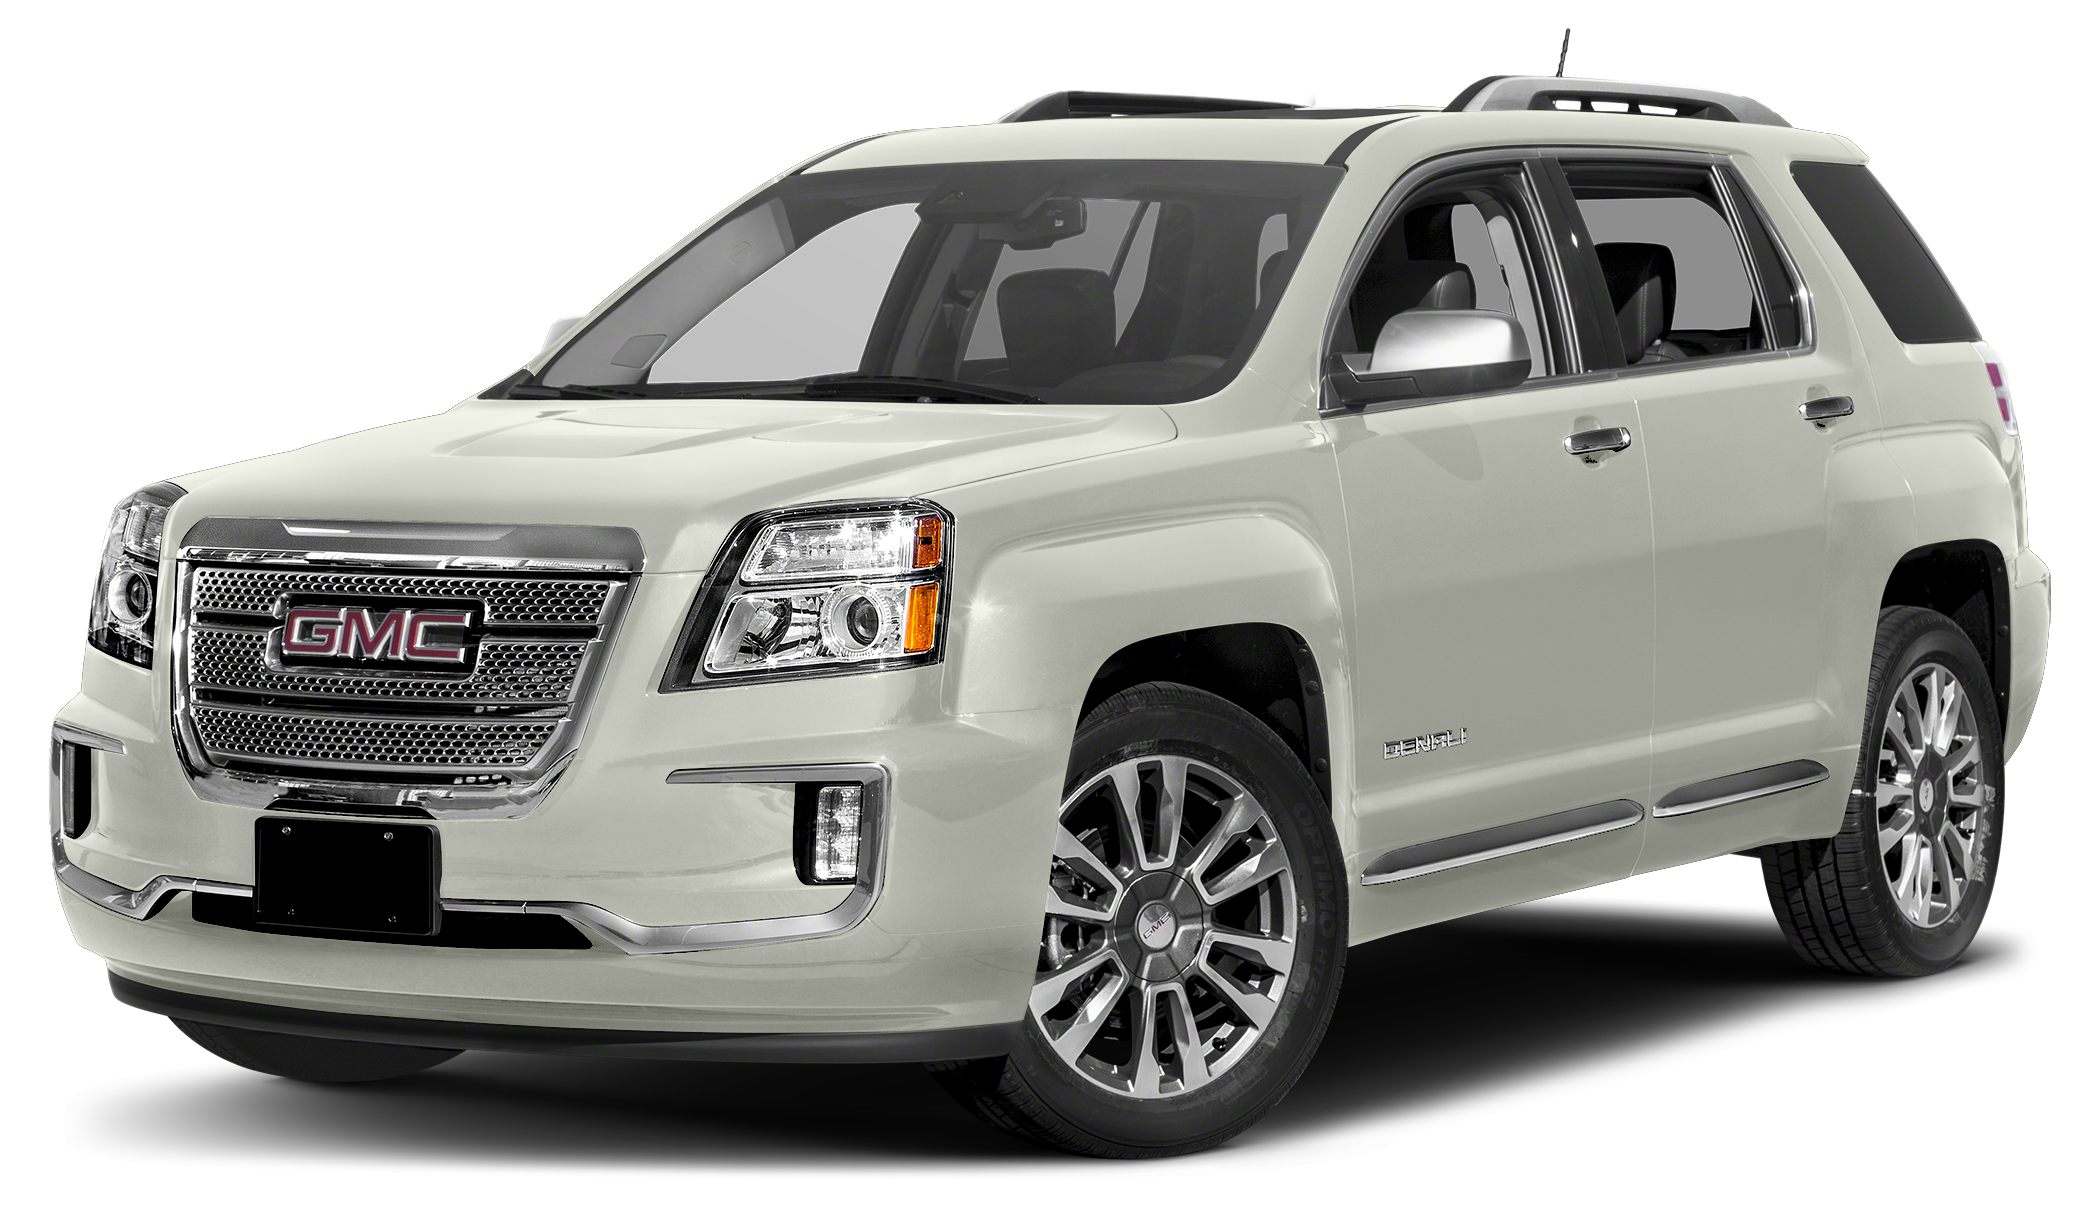 2016 GMC Terrain Denali Heated Leather Seats Navigation Back-Up Camera Premium Sound System Re